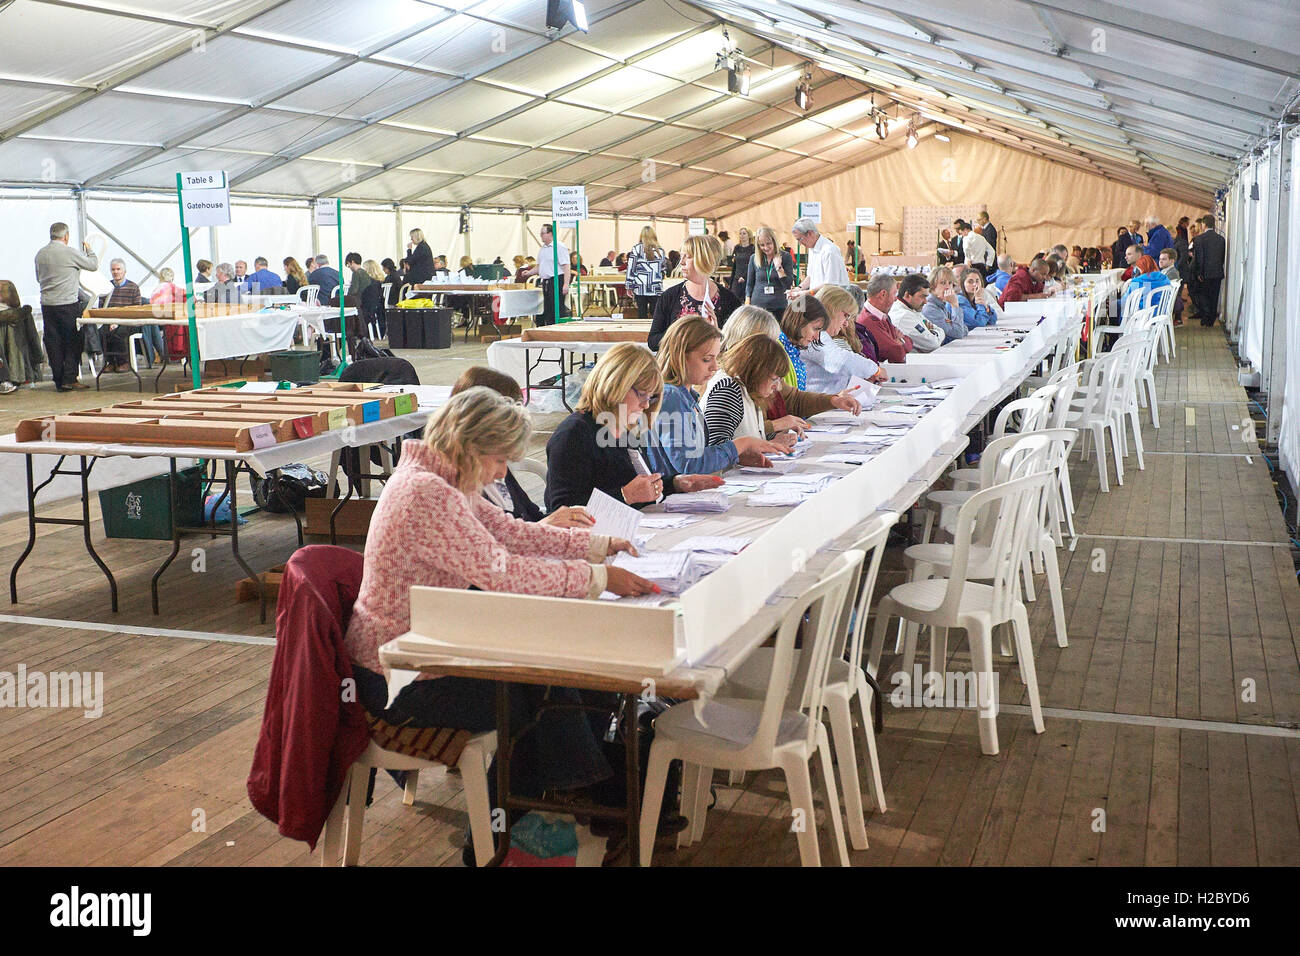 Aylesbury constituency count underway following voting in the 2015 general election - Stock Image